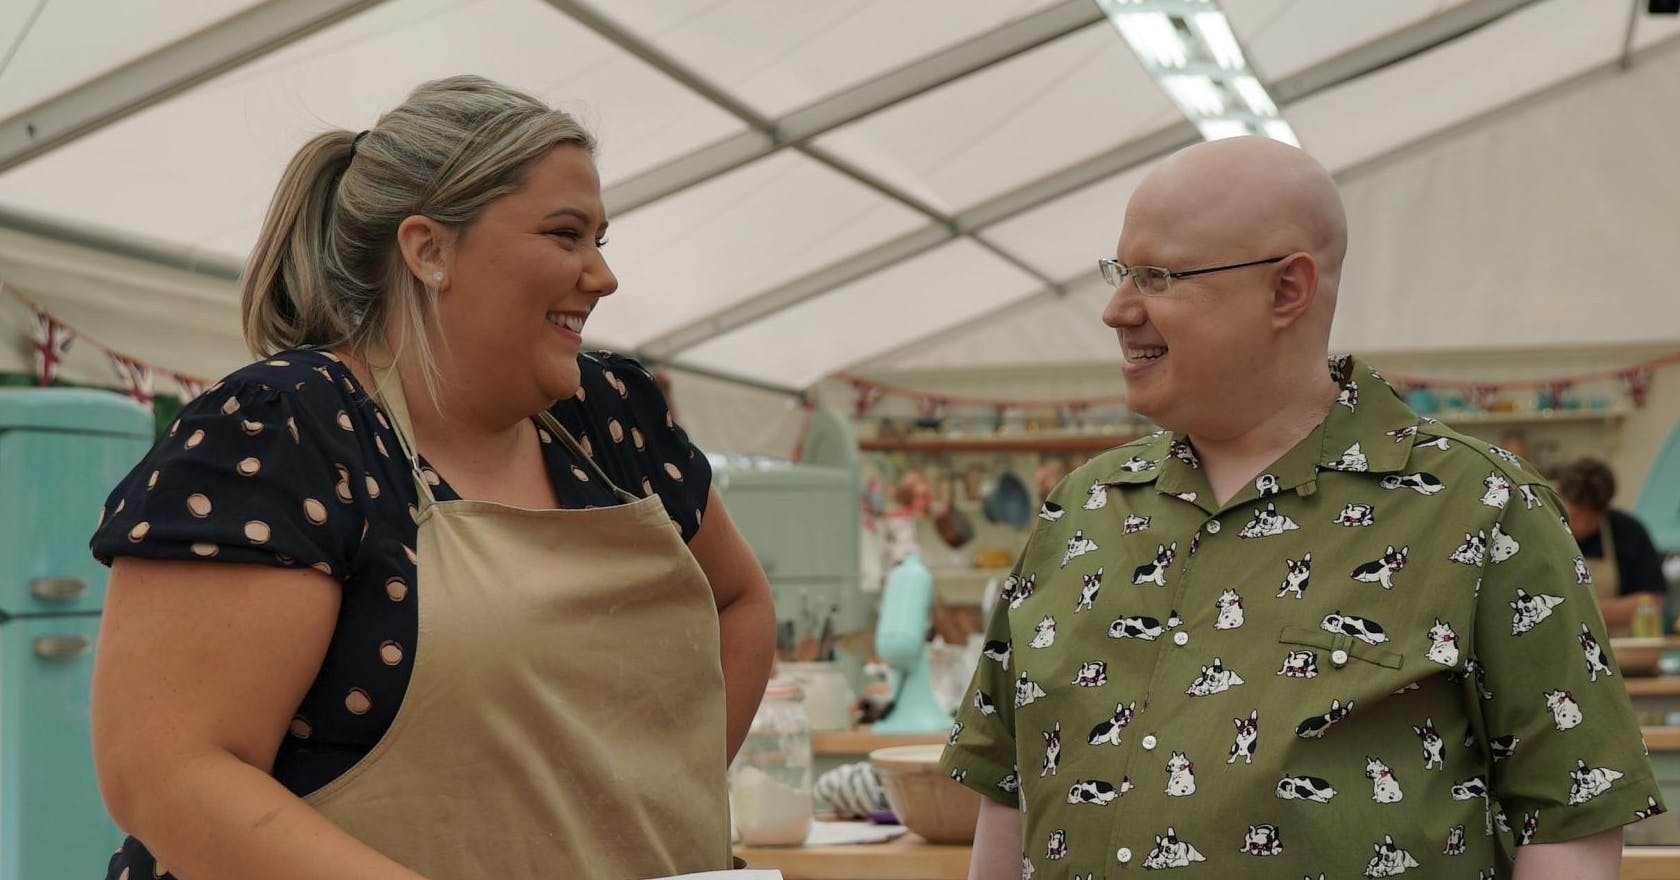 GBBO: the four life lessons to take from a stressful pastry week